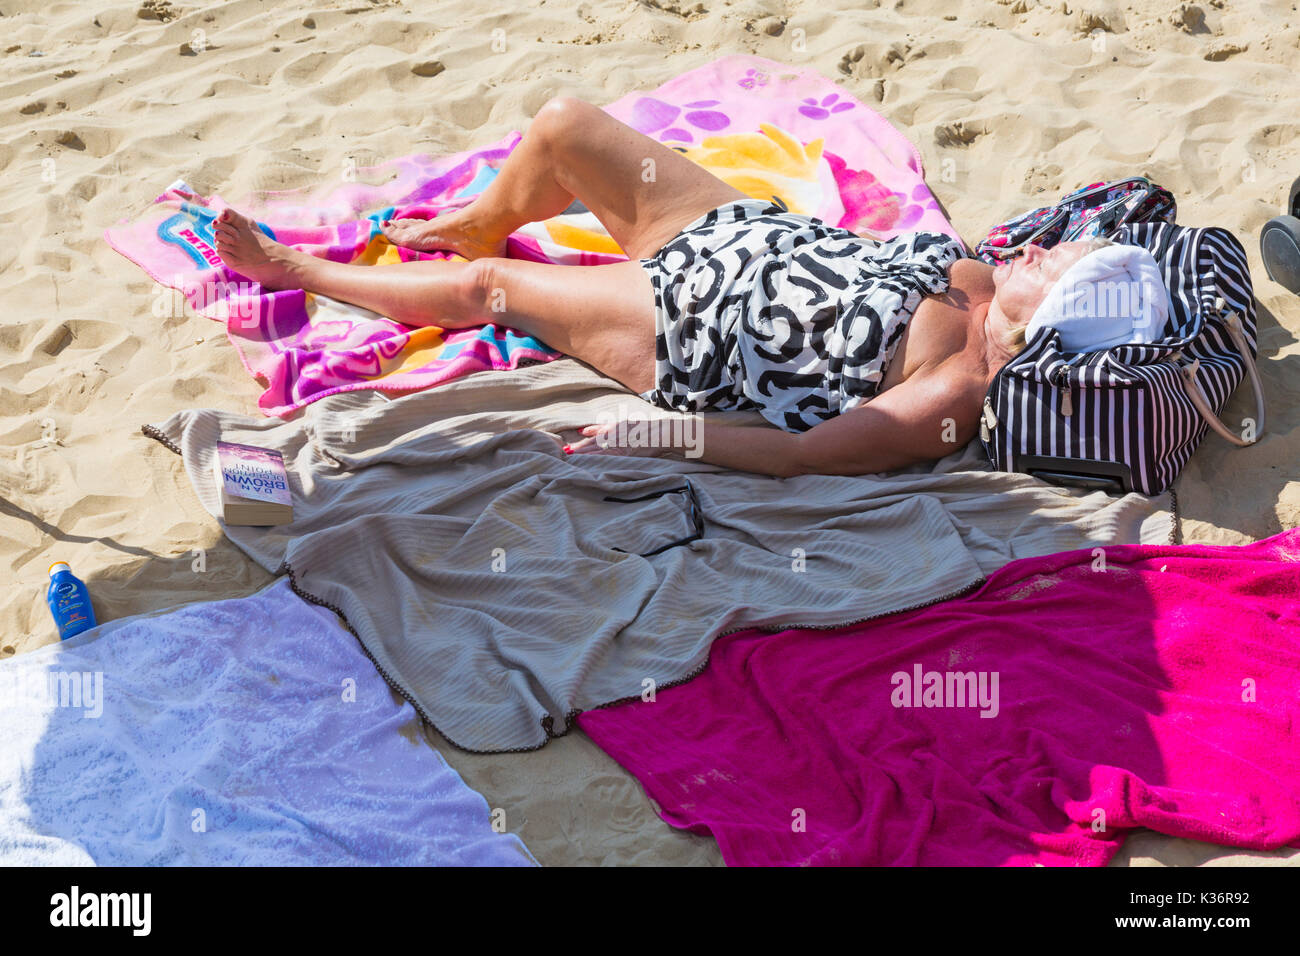 Bournemouth, Dorset, UK. 2nd Sep, 2017. UK weather: lovely warm sunny day at Bournemouth beach. Mature woman lying on beach sunbathing, relaxing in the sunshine. Credit: Carolyn Jenkins/Alamy Live News - Stock Image